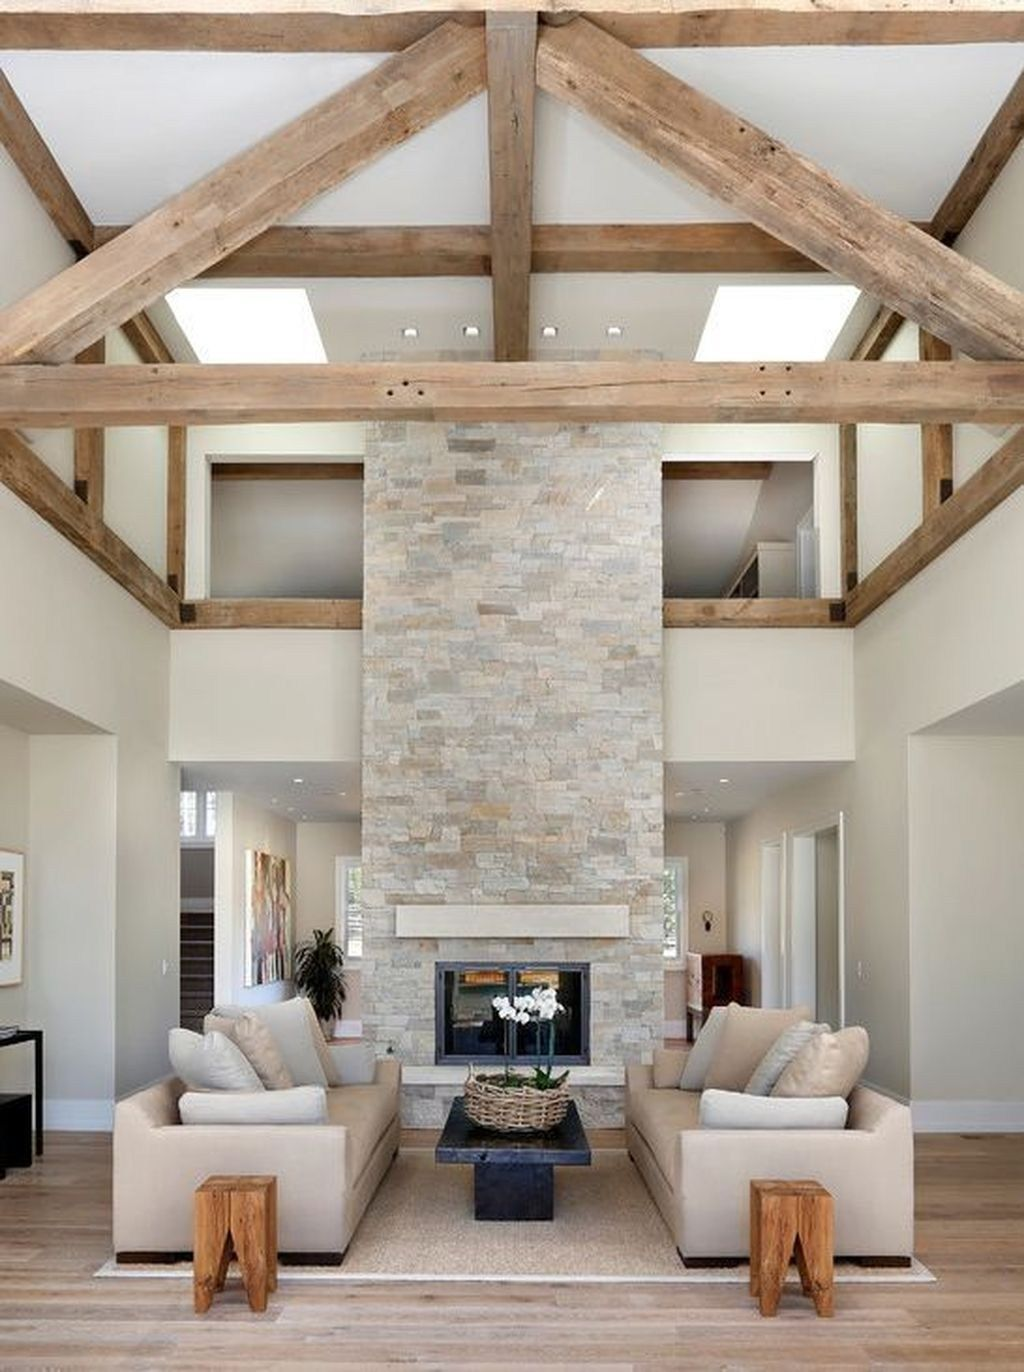 36 Amazing Modern Farmhouse Living Room Decor Ideas   Hoomdesign